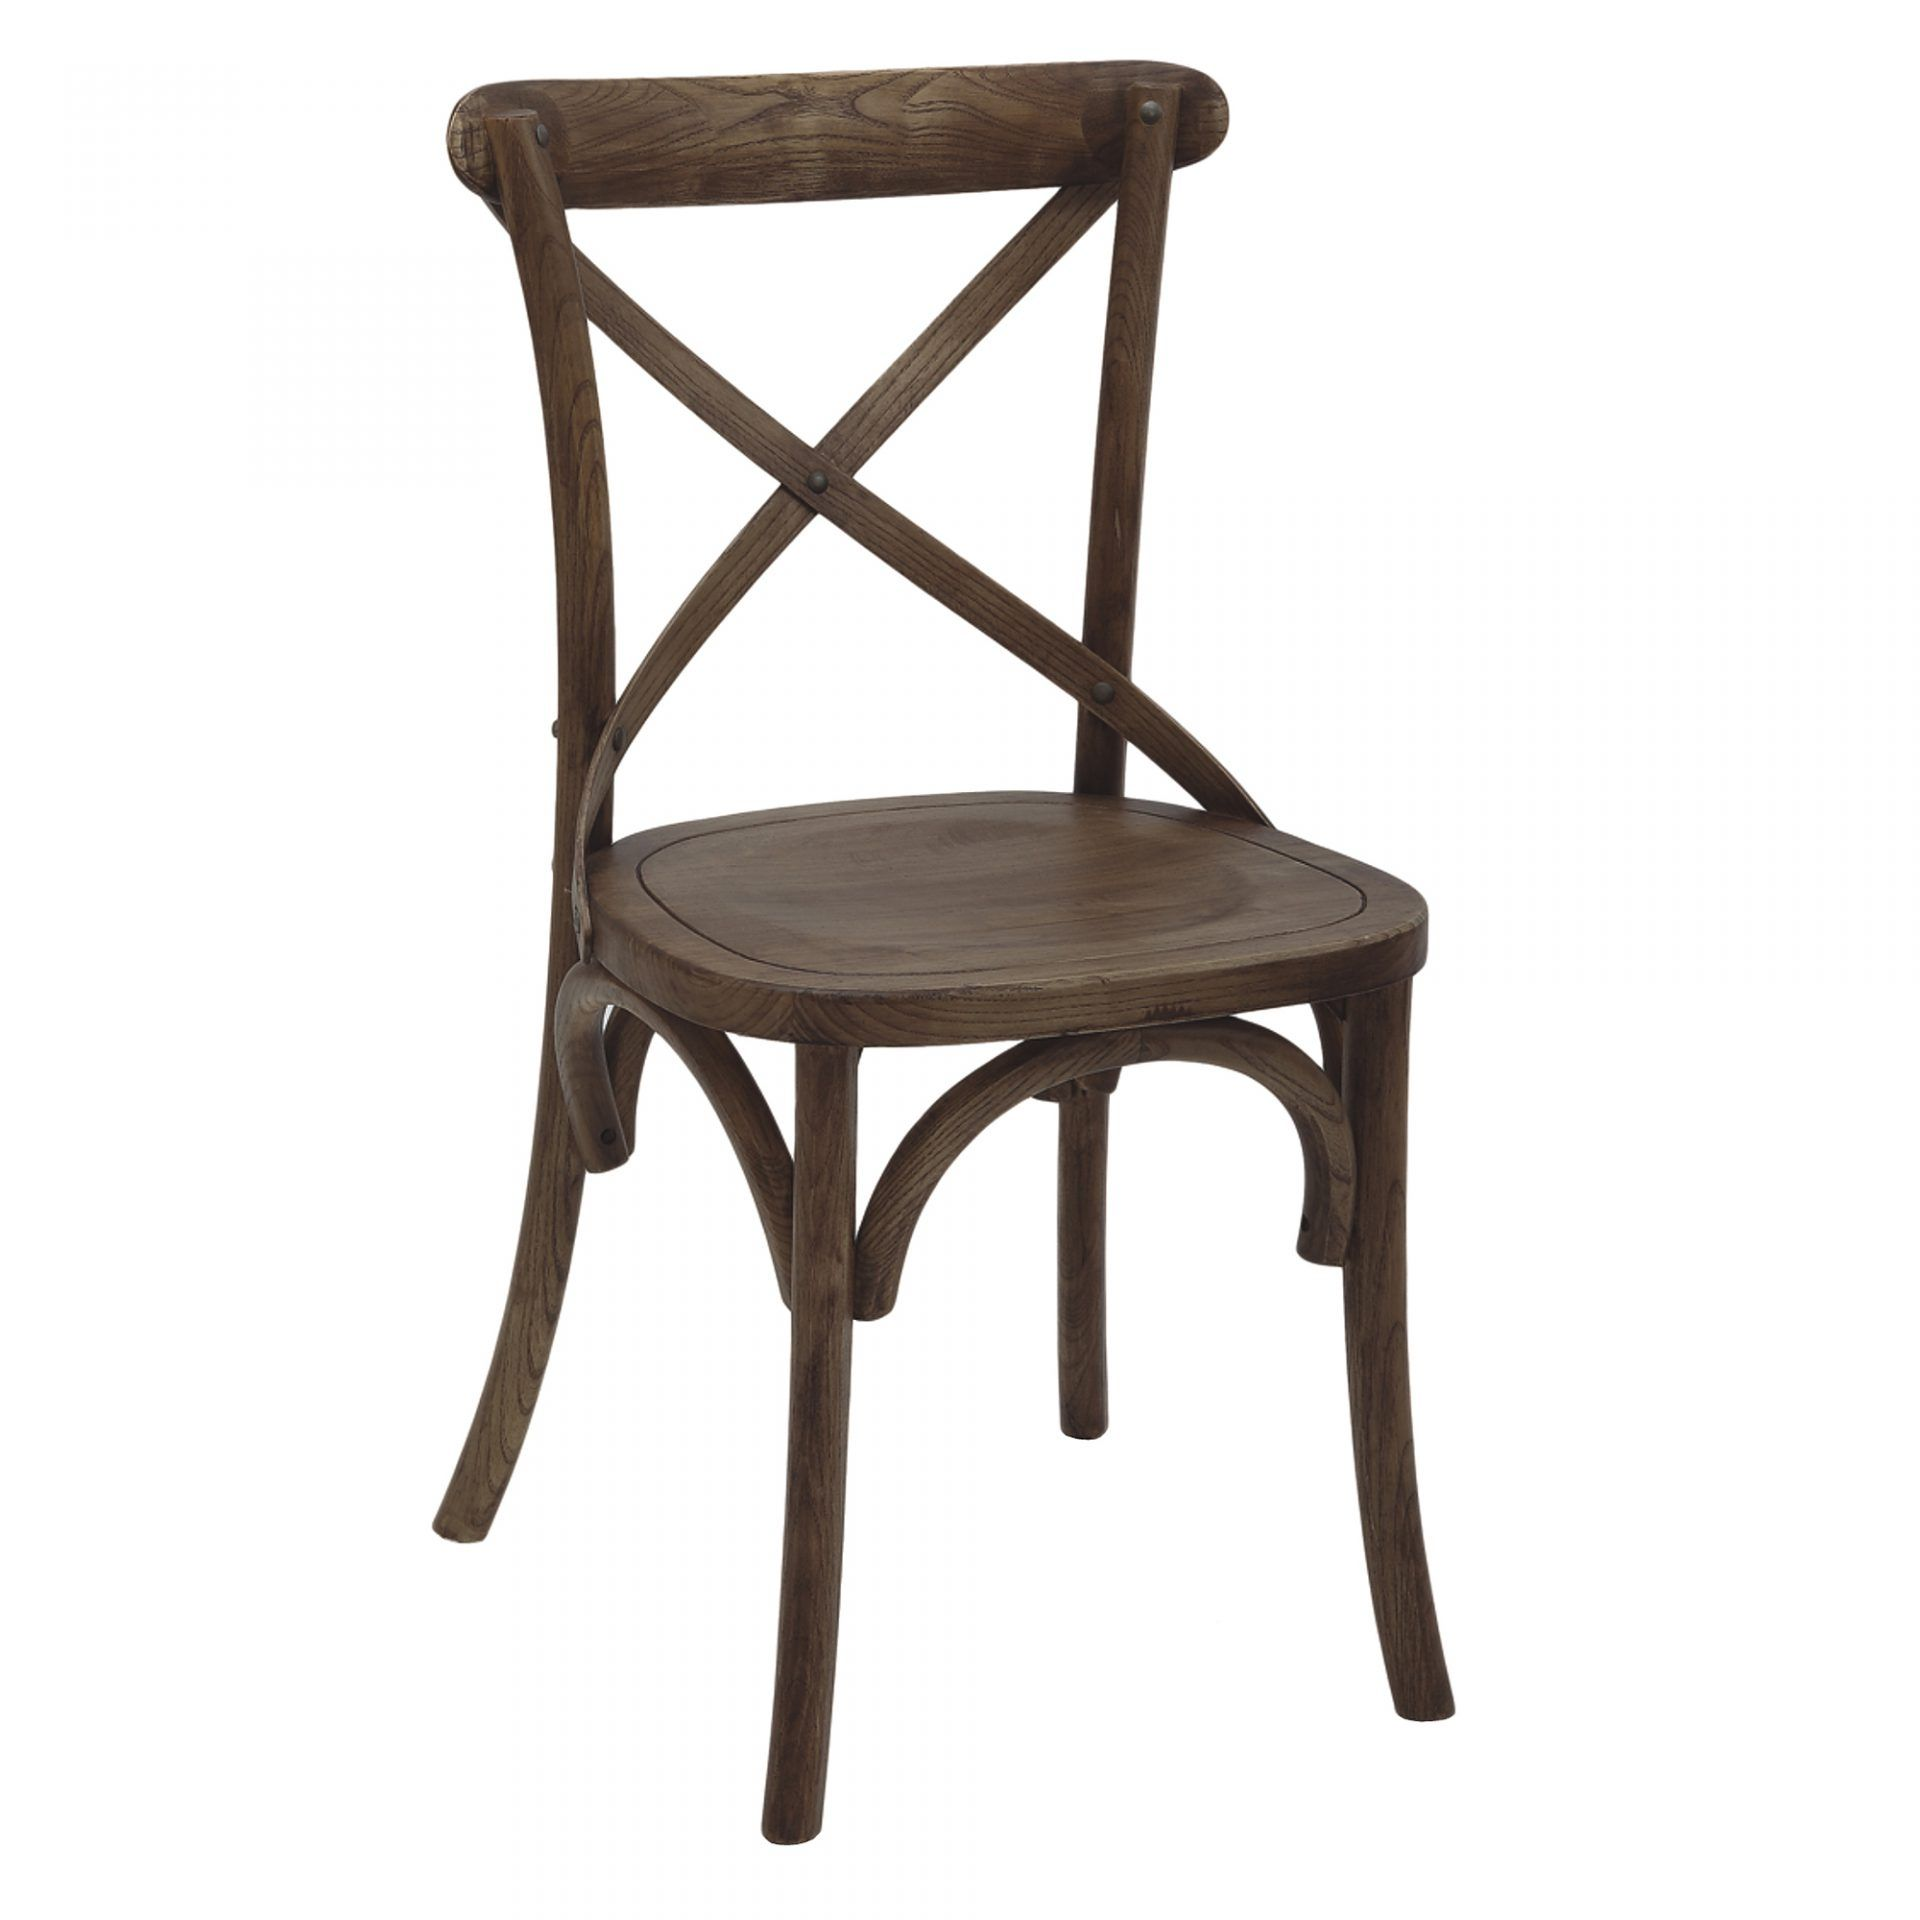 Pierre Cafe Chairm2  Dining Chairs  Moe's Wholesale  Dining Prepossessing Wholesale Dining Room Chairs Decorating Design